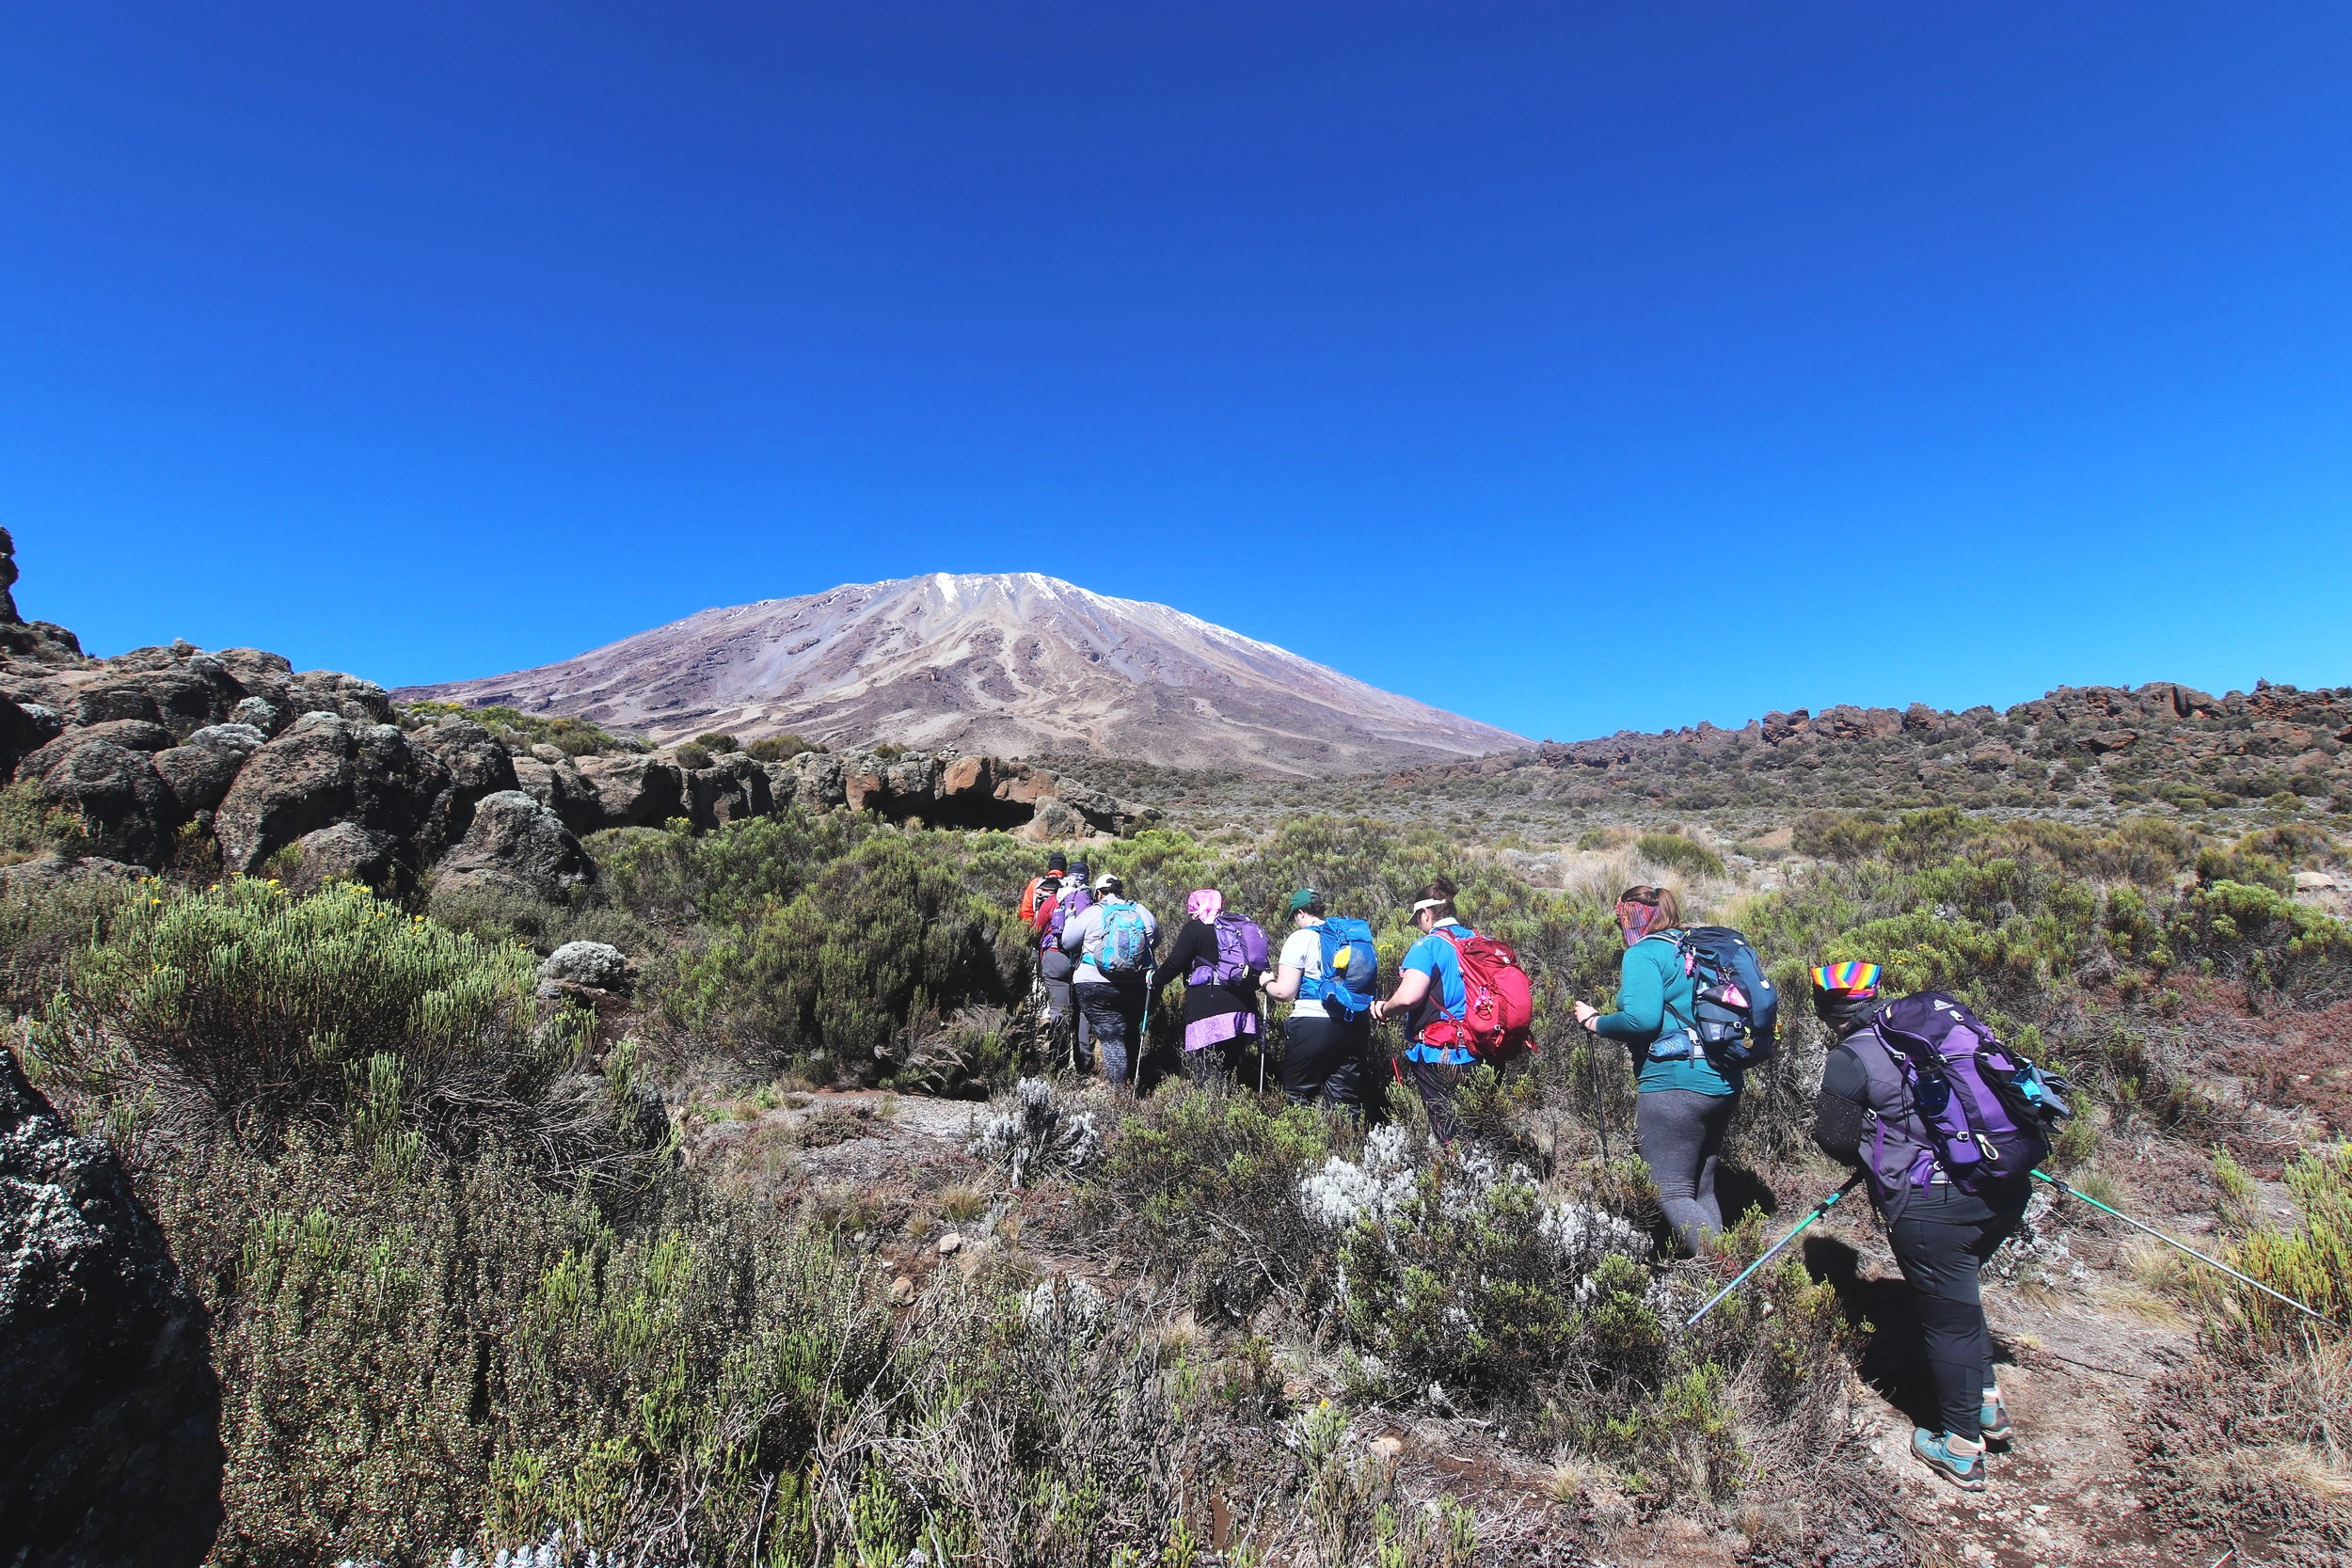 DAY 4:TIME TOACCLIMATIZE - SECOND CAVE to THIRD CAVEElevation: 3,450 - 3,800 mHiking Time: 4 - 5 hoursDistance: 3 km